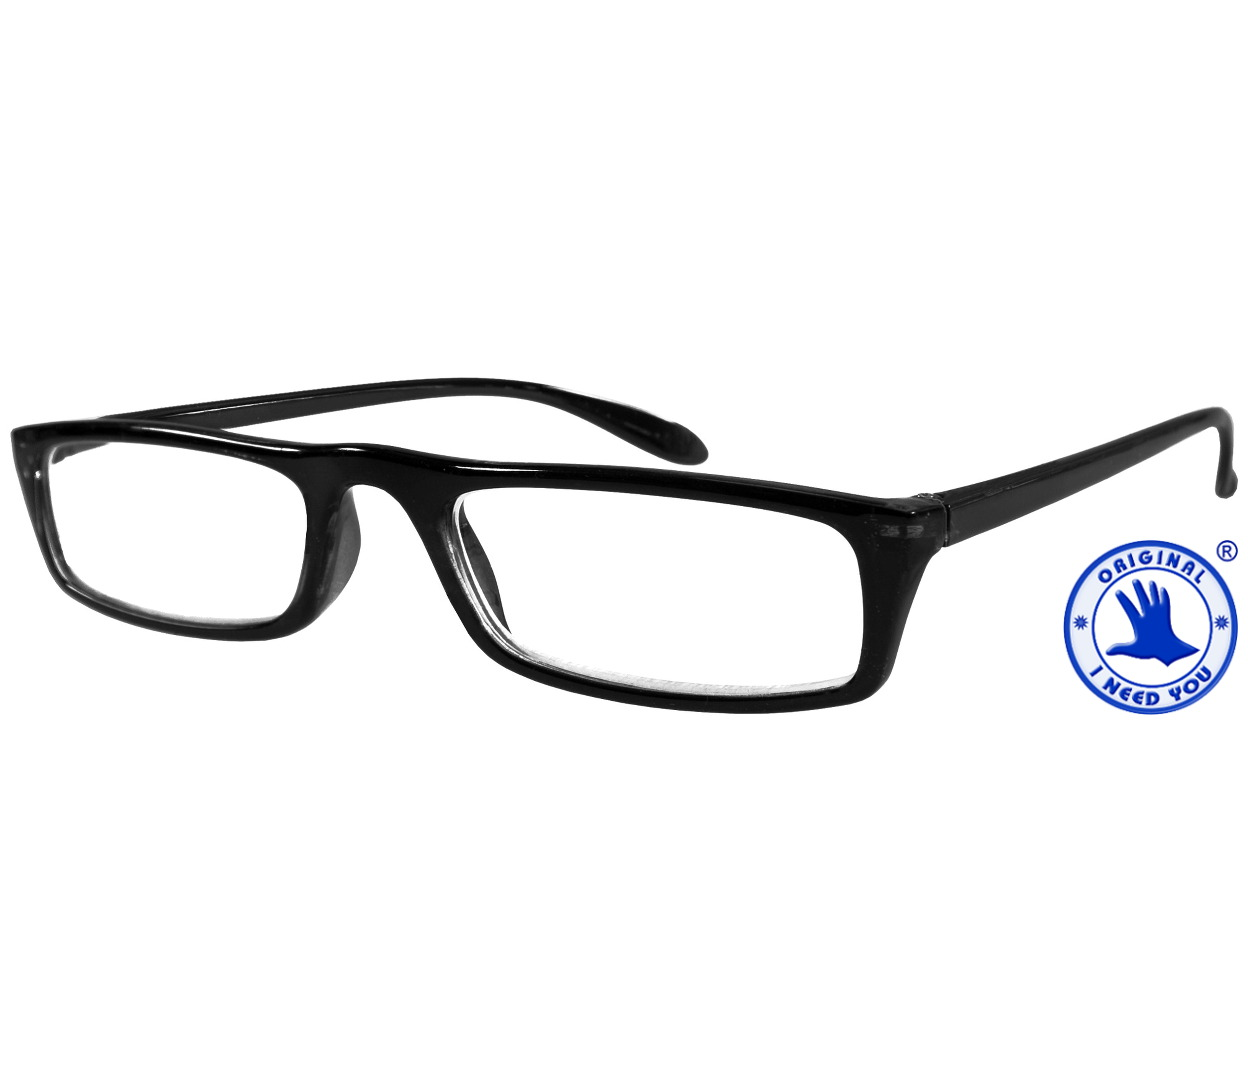 Main Image (Angle) - Florida (Black) Classic Reading Glasses